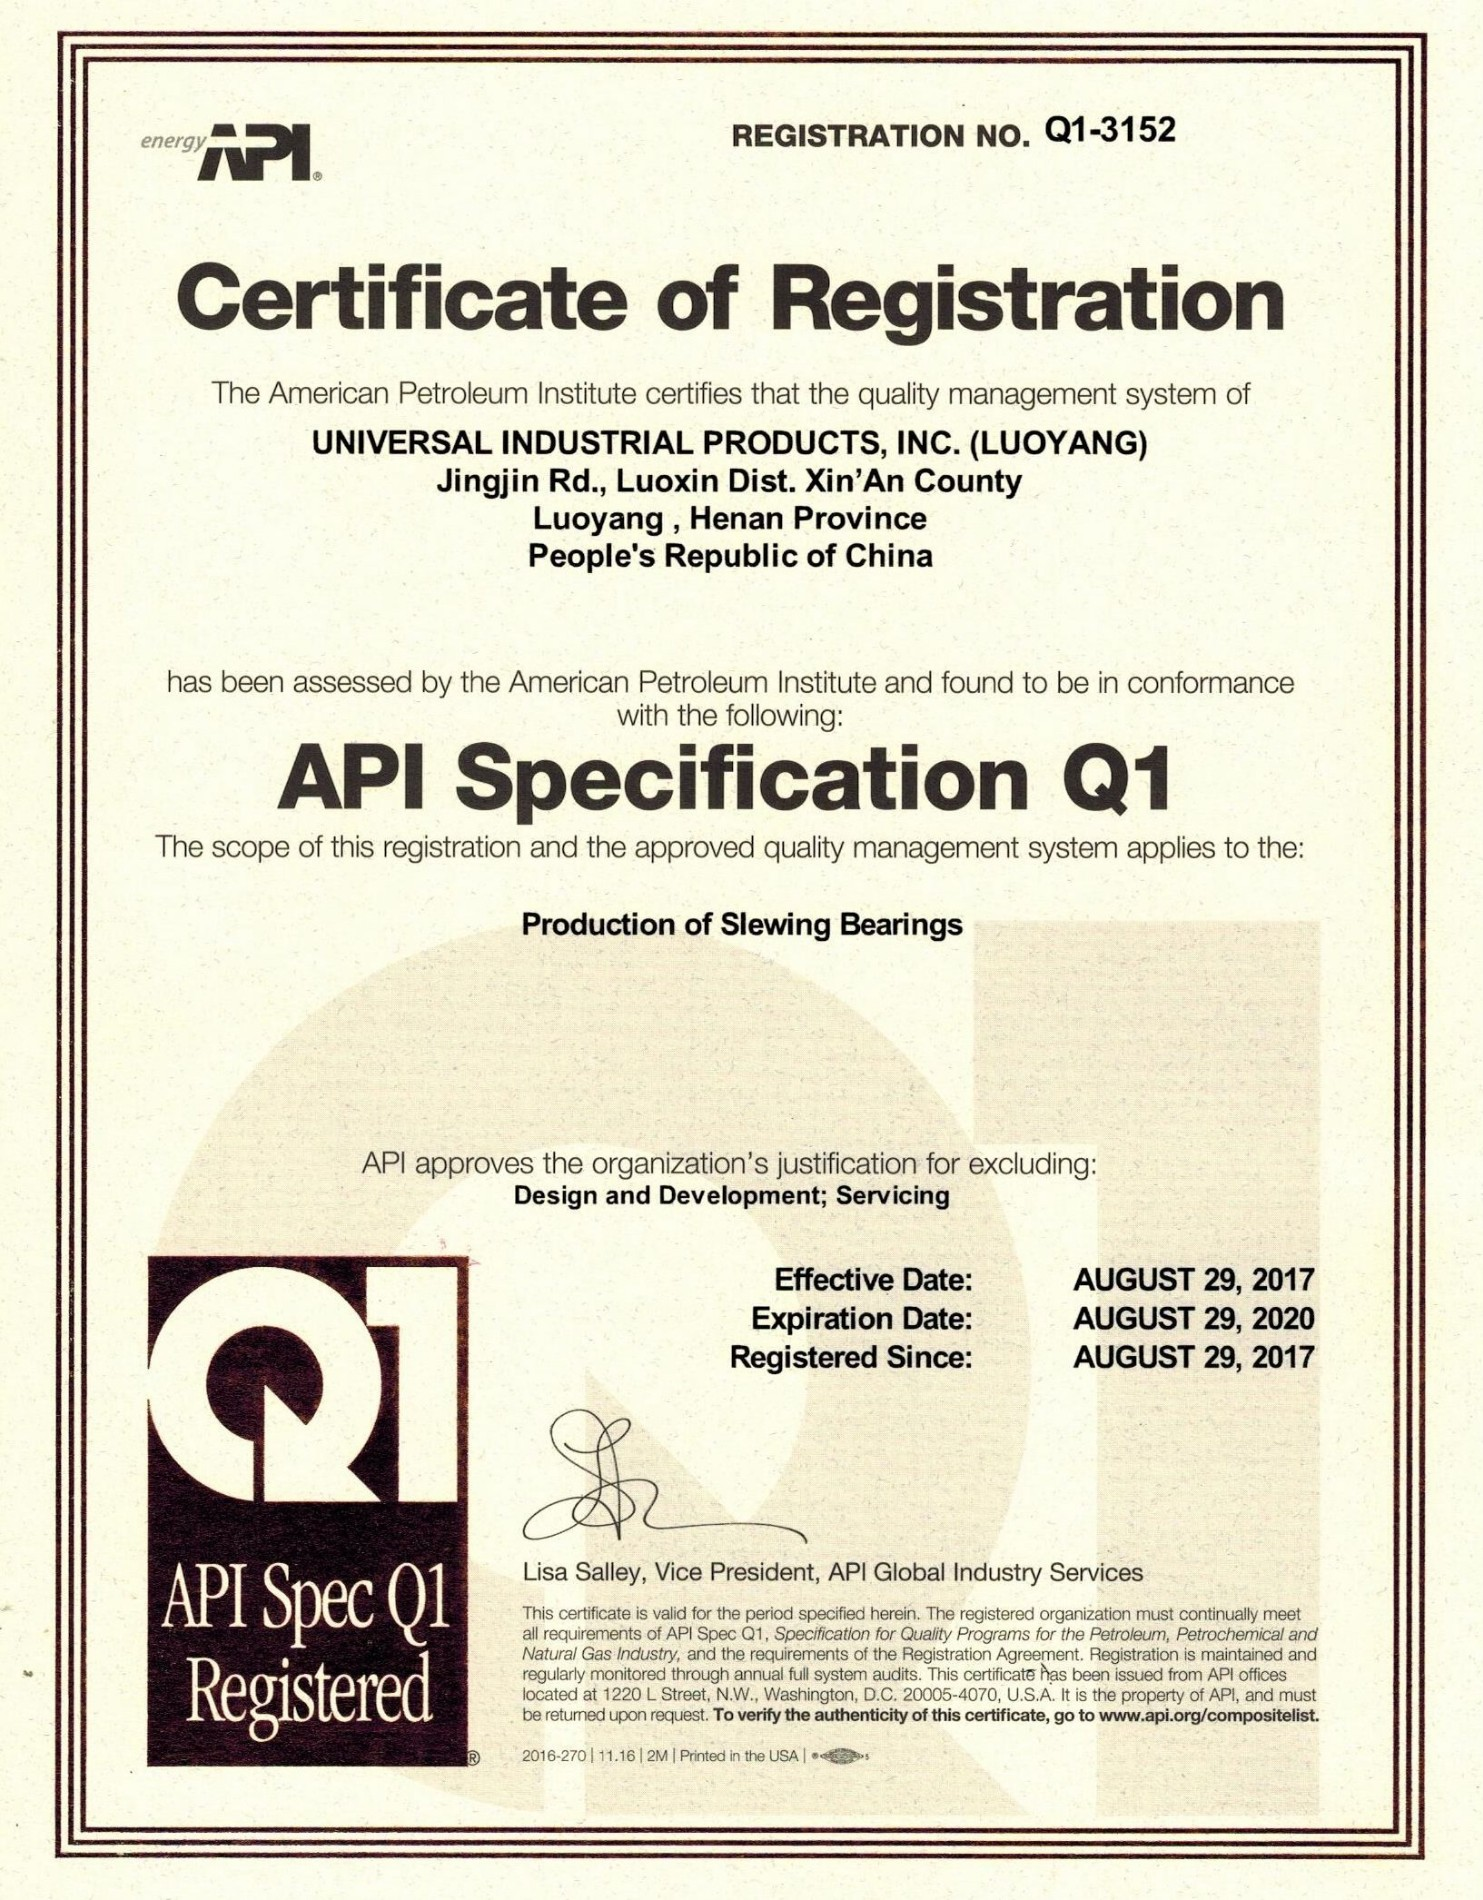 Proud to Announce: We are API Registered!